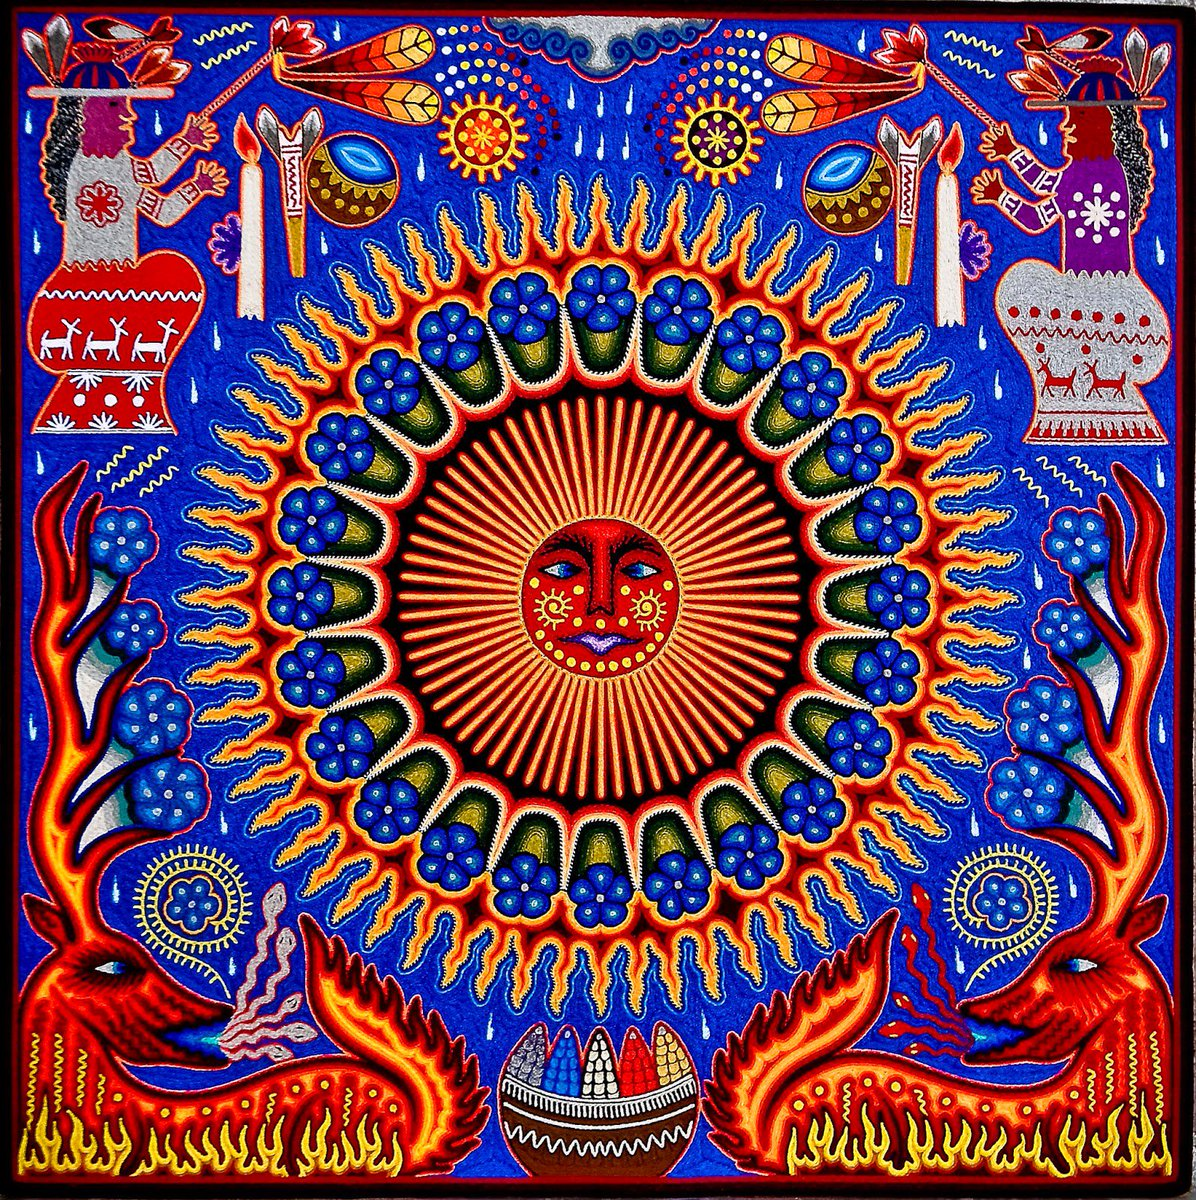 Arte Huichol Hd Mareo Morghulis On Twitter